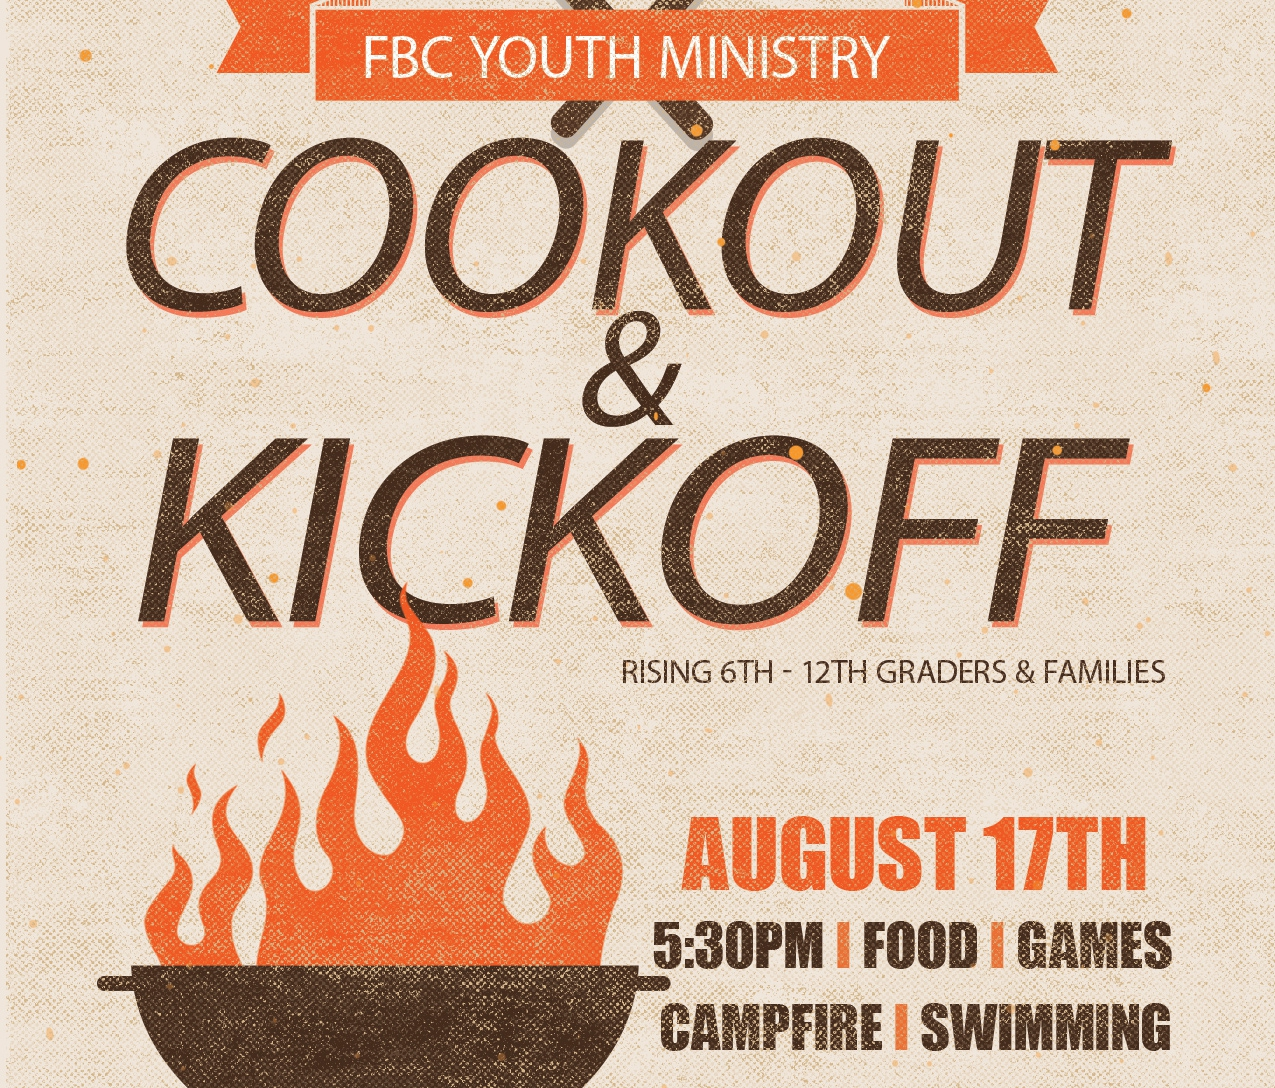 Youth cookout slide